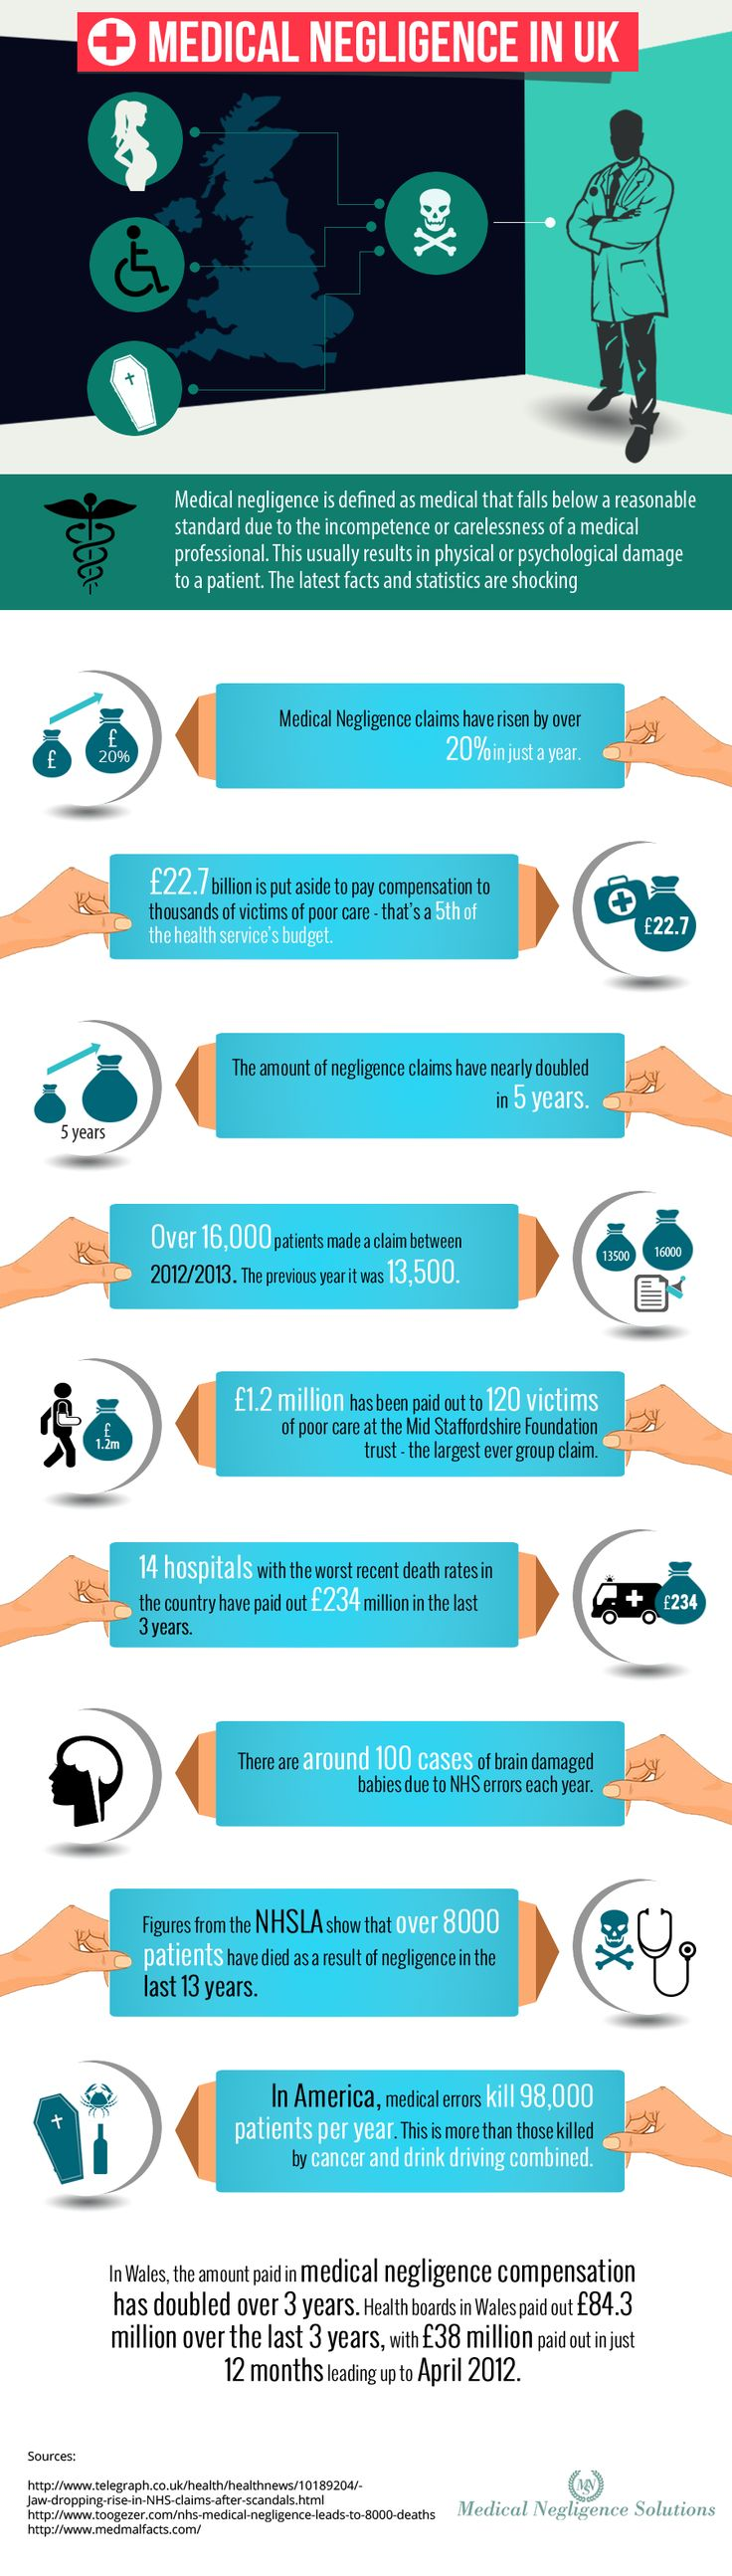 Medical Negligence Facts - http://www.medical-negligence-solutions.co.uk